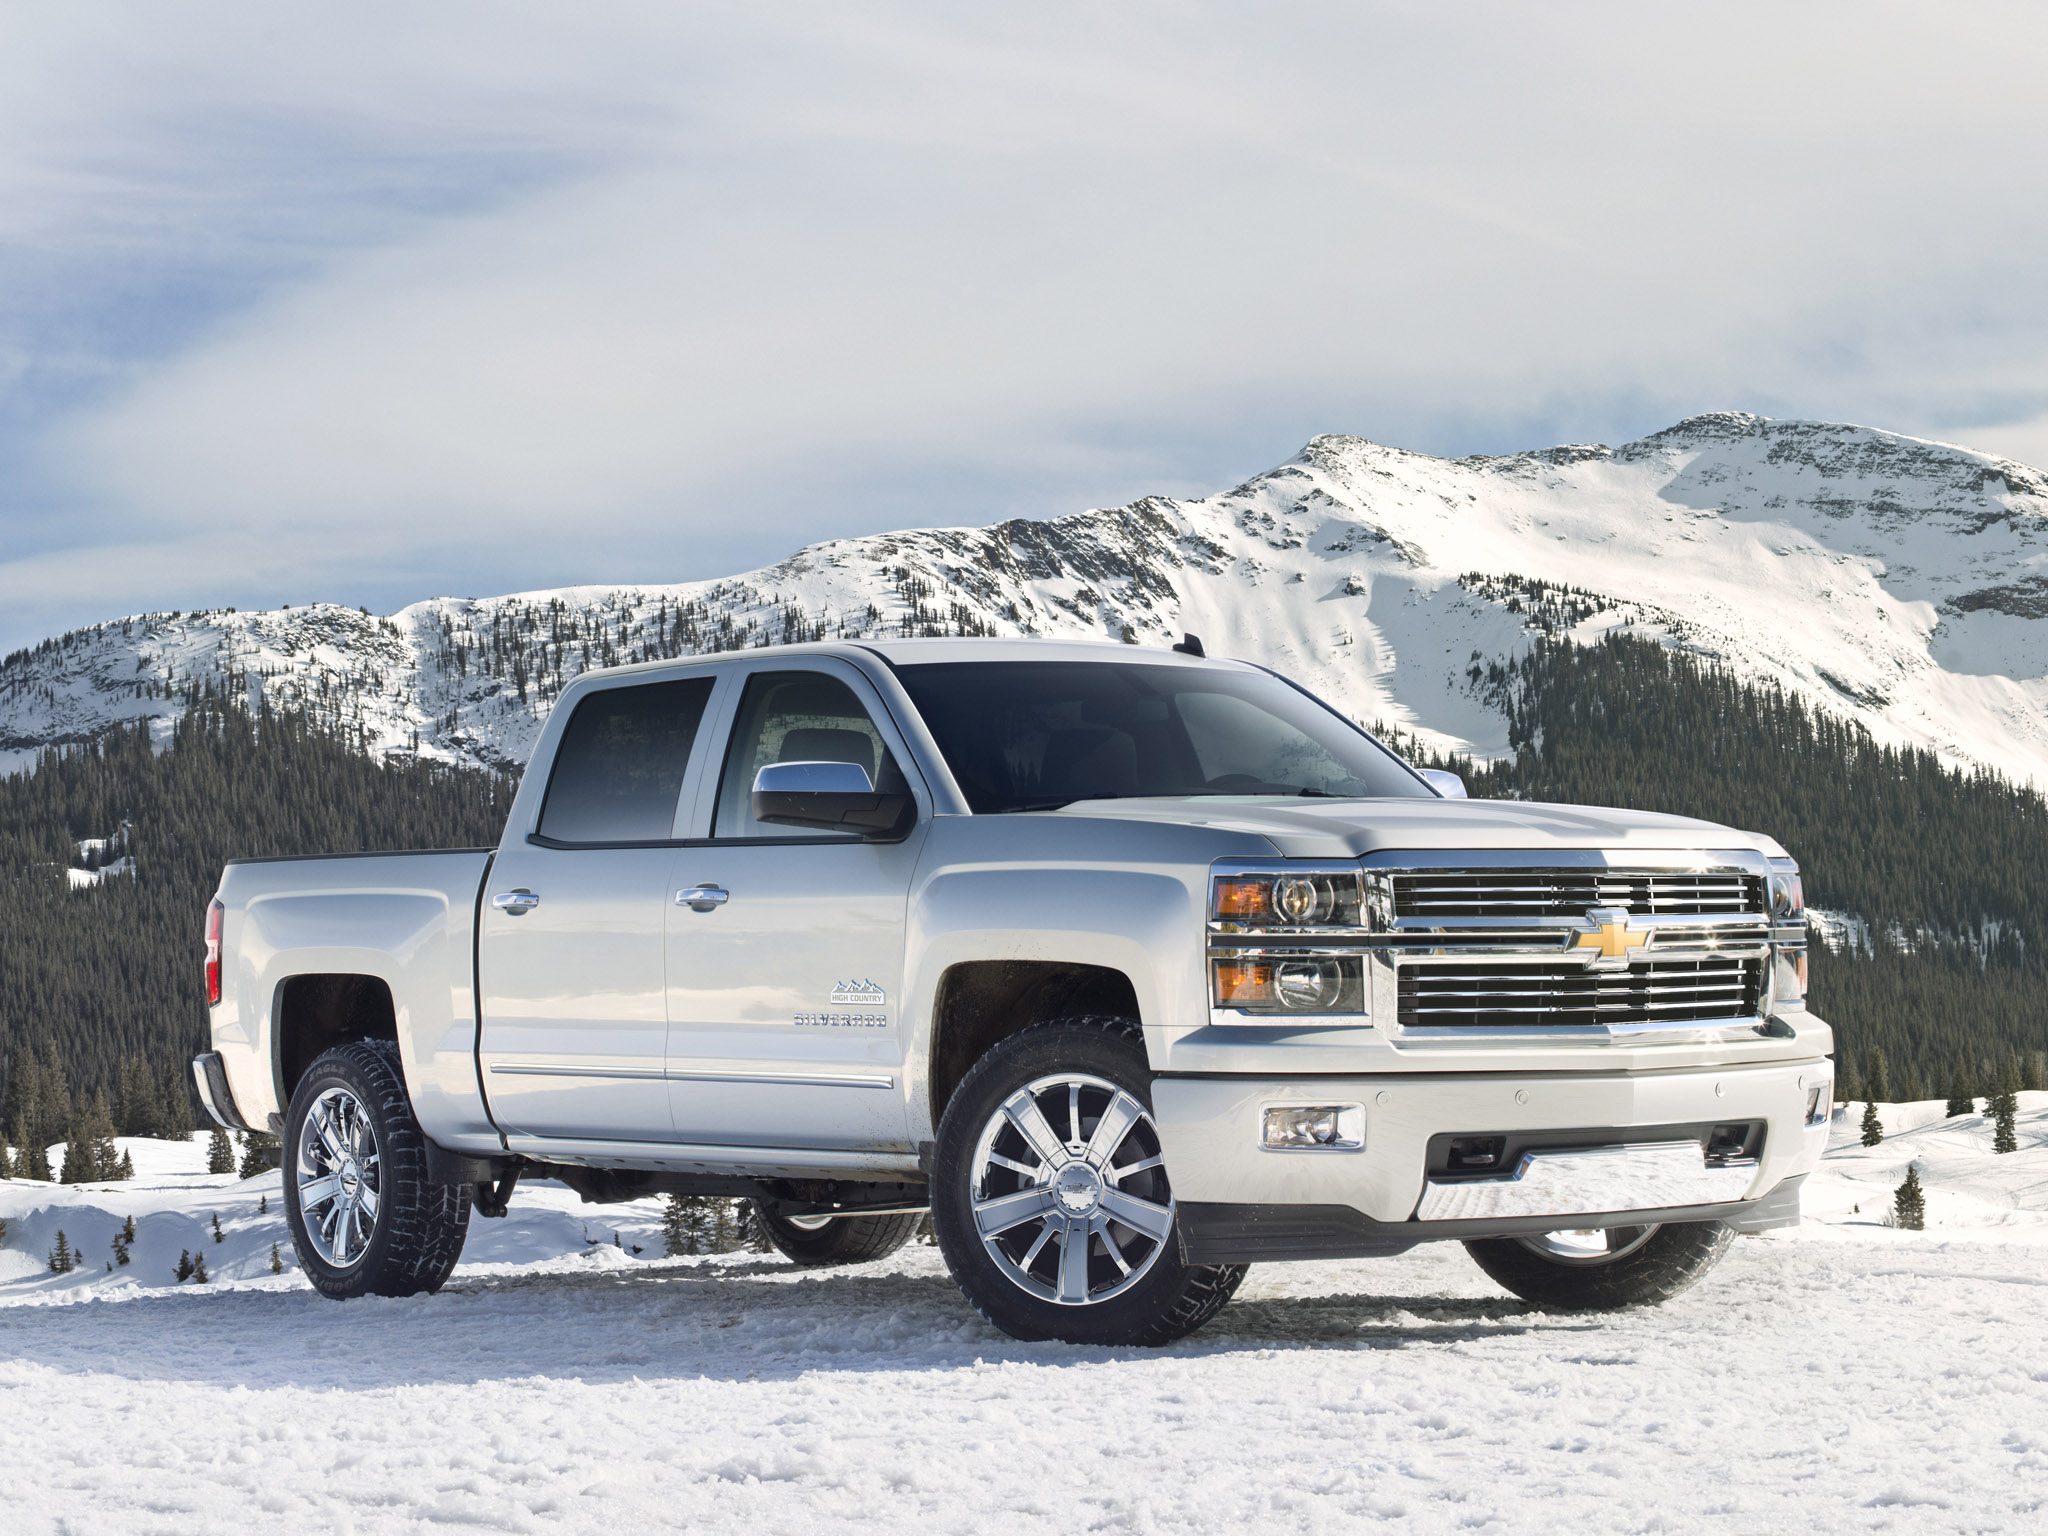 2014 chevrolet silverado high country truck 4x4 ds wallpaper 2048x1536 109995 wallpaperup. Black Bedroom Furniture Sets. Home Design Ideas